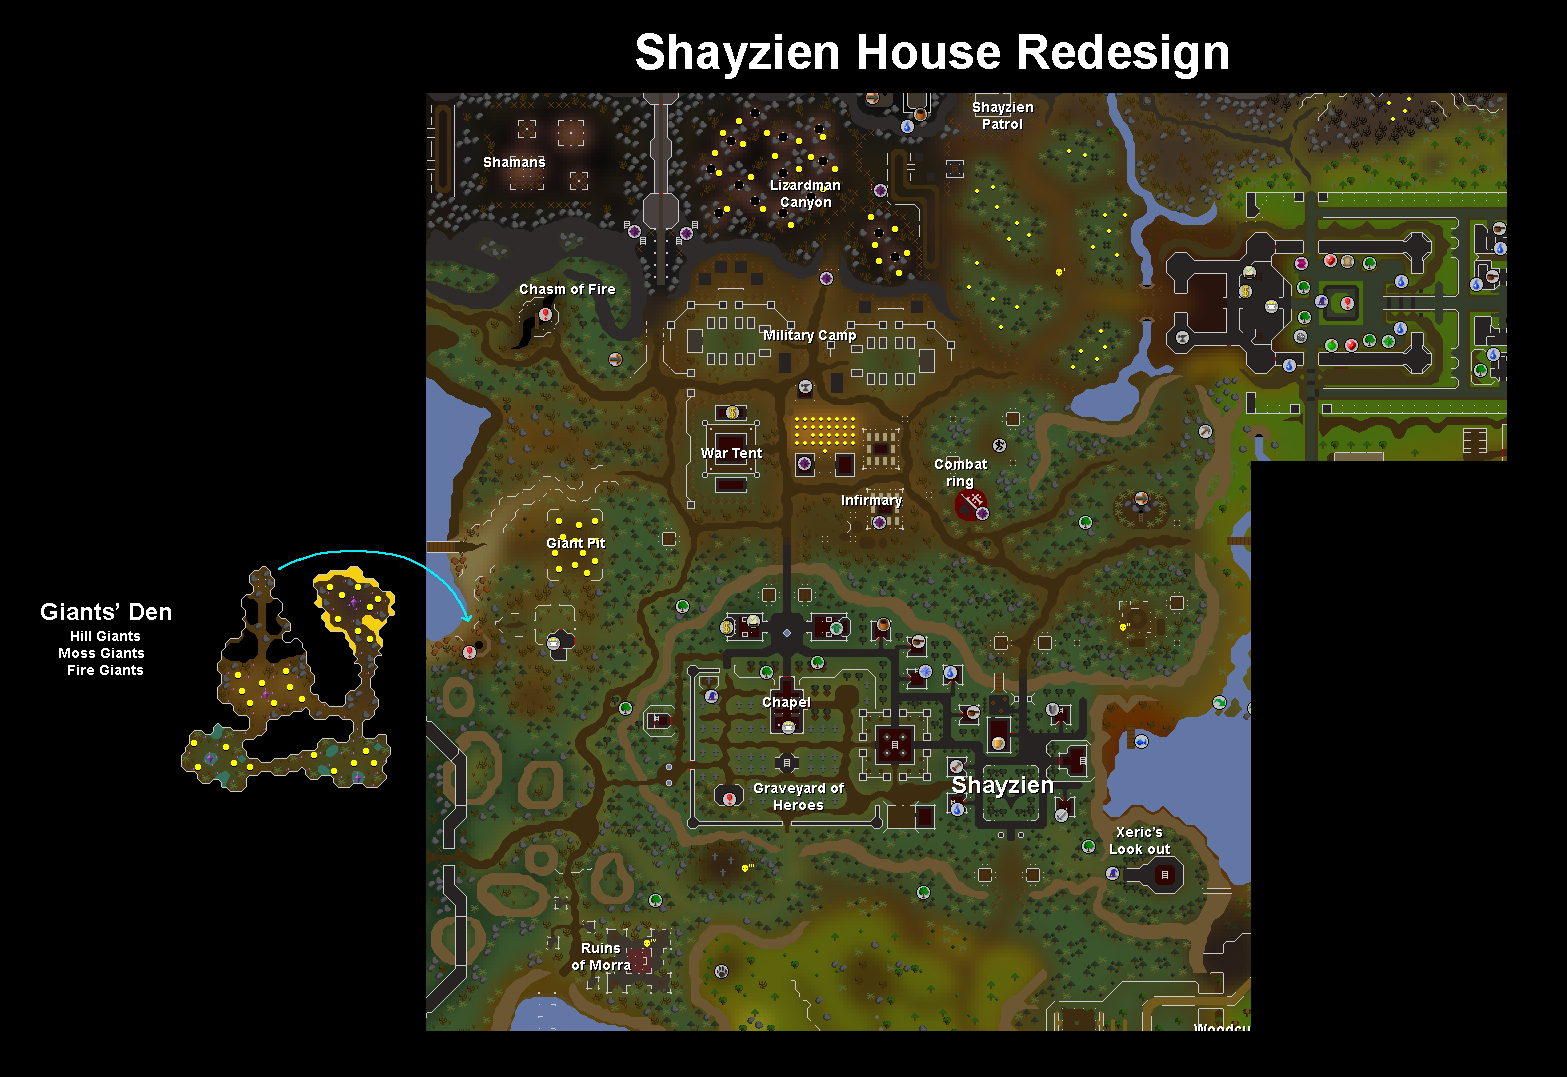 shayzien_redesign.png